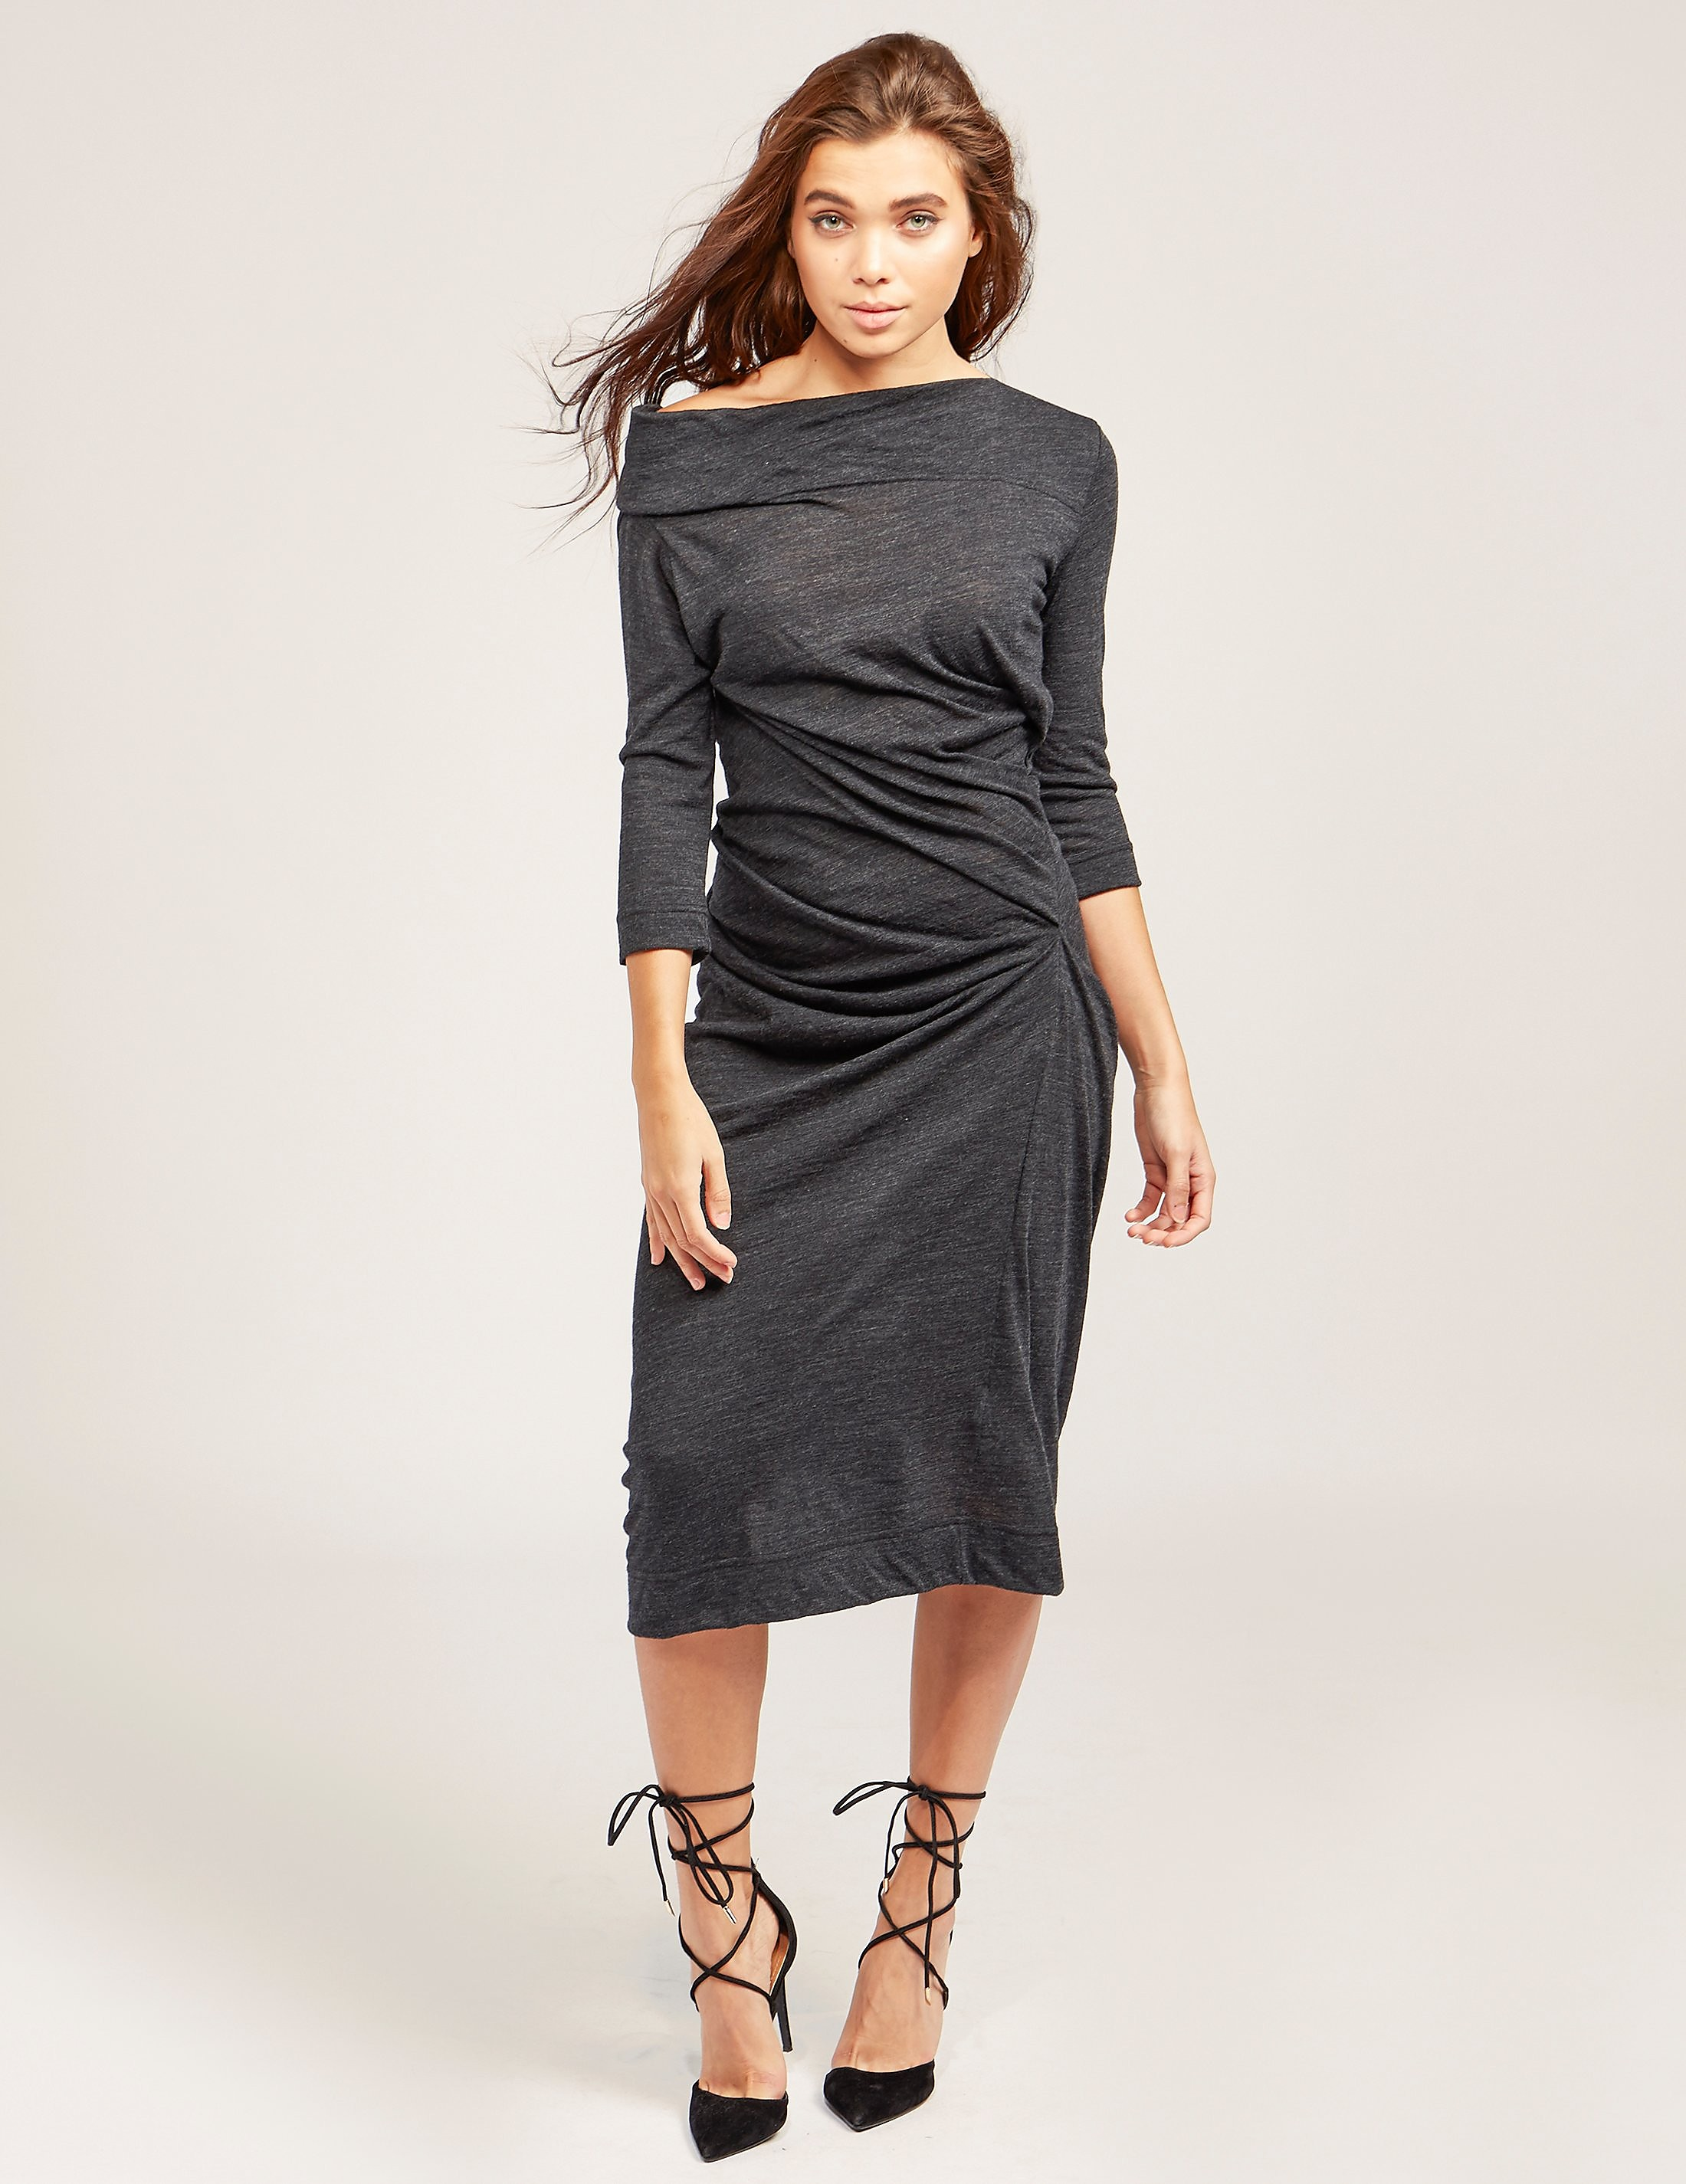 Vivienne Westwood Taxa Jersey Dress